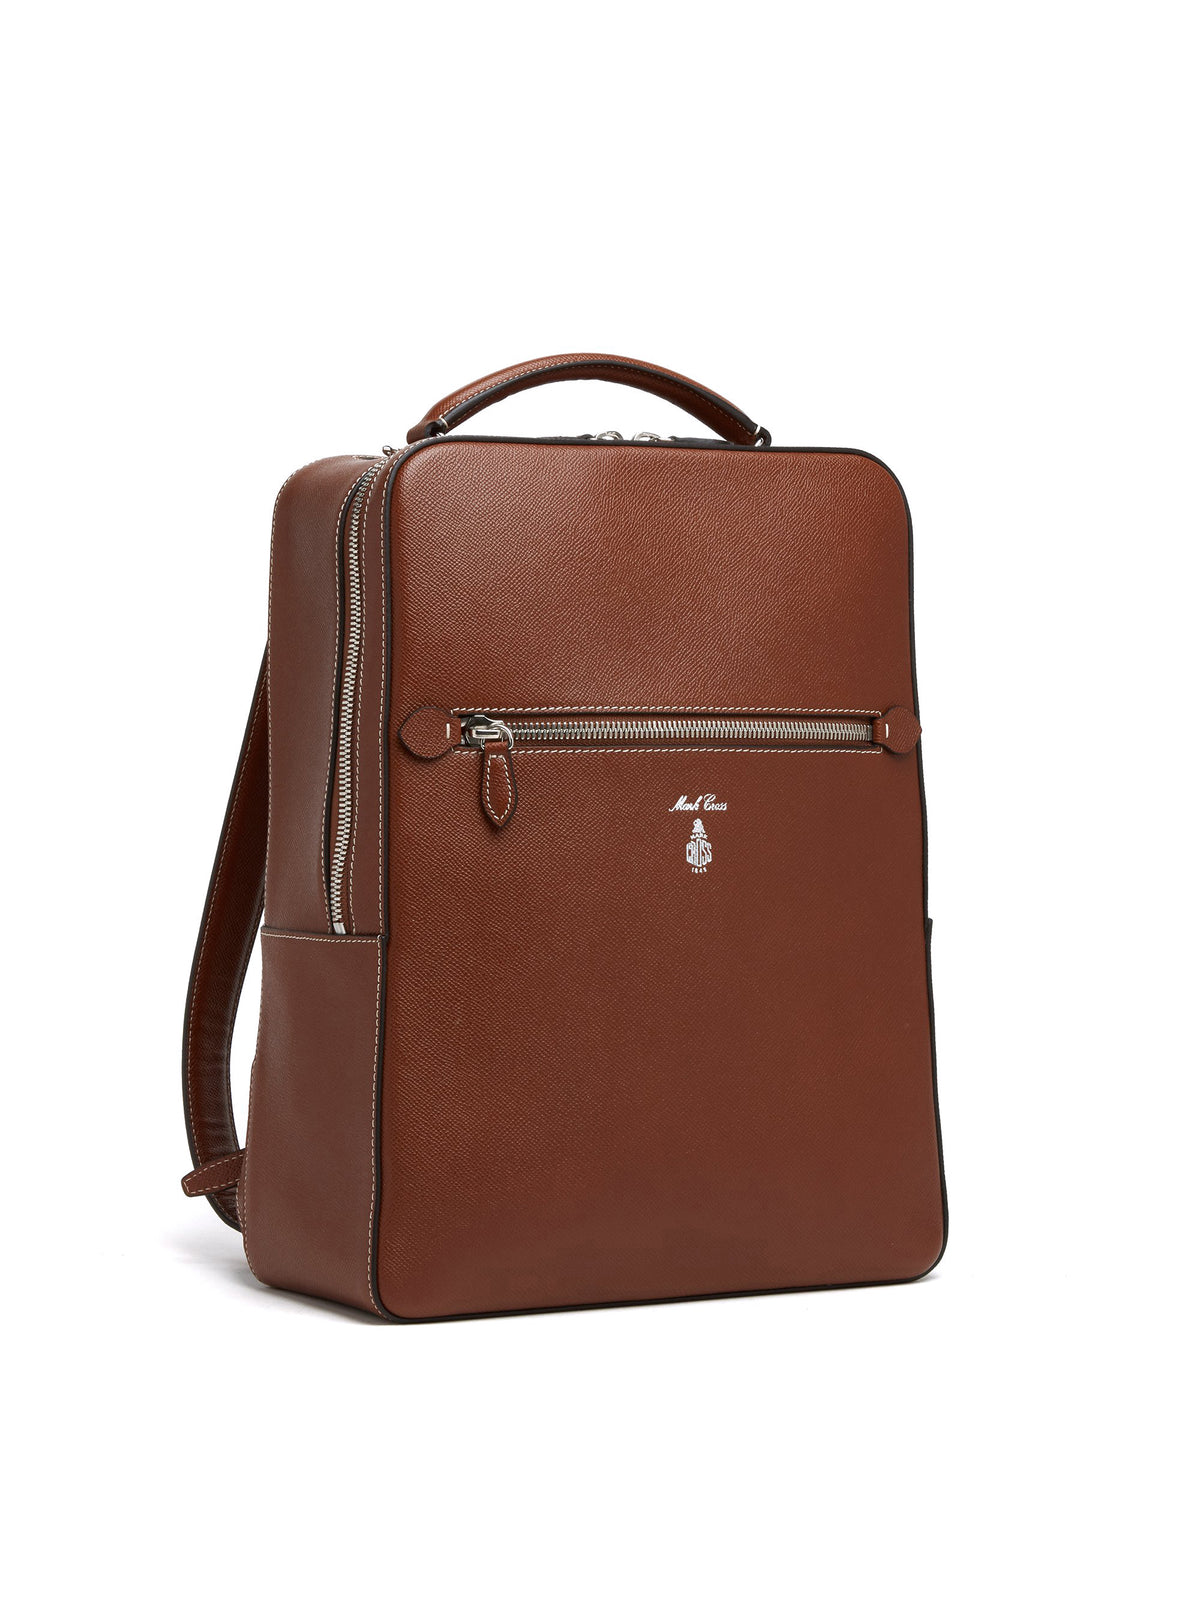 Mark Cross Alexander Leather Backpack Saffiano Acorn Side